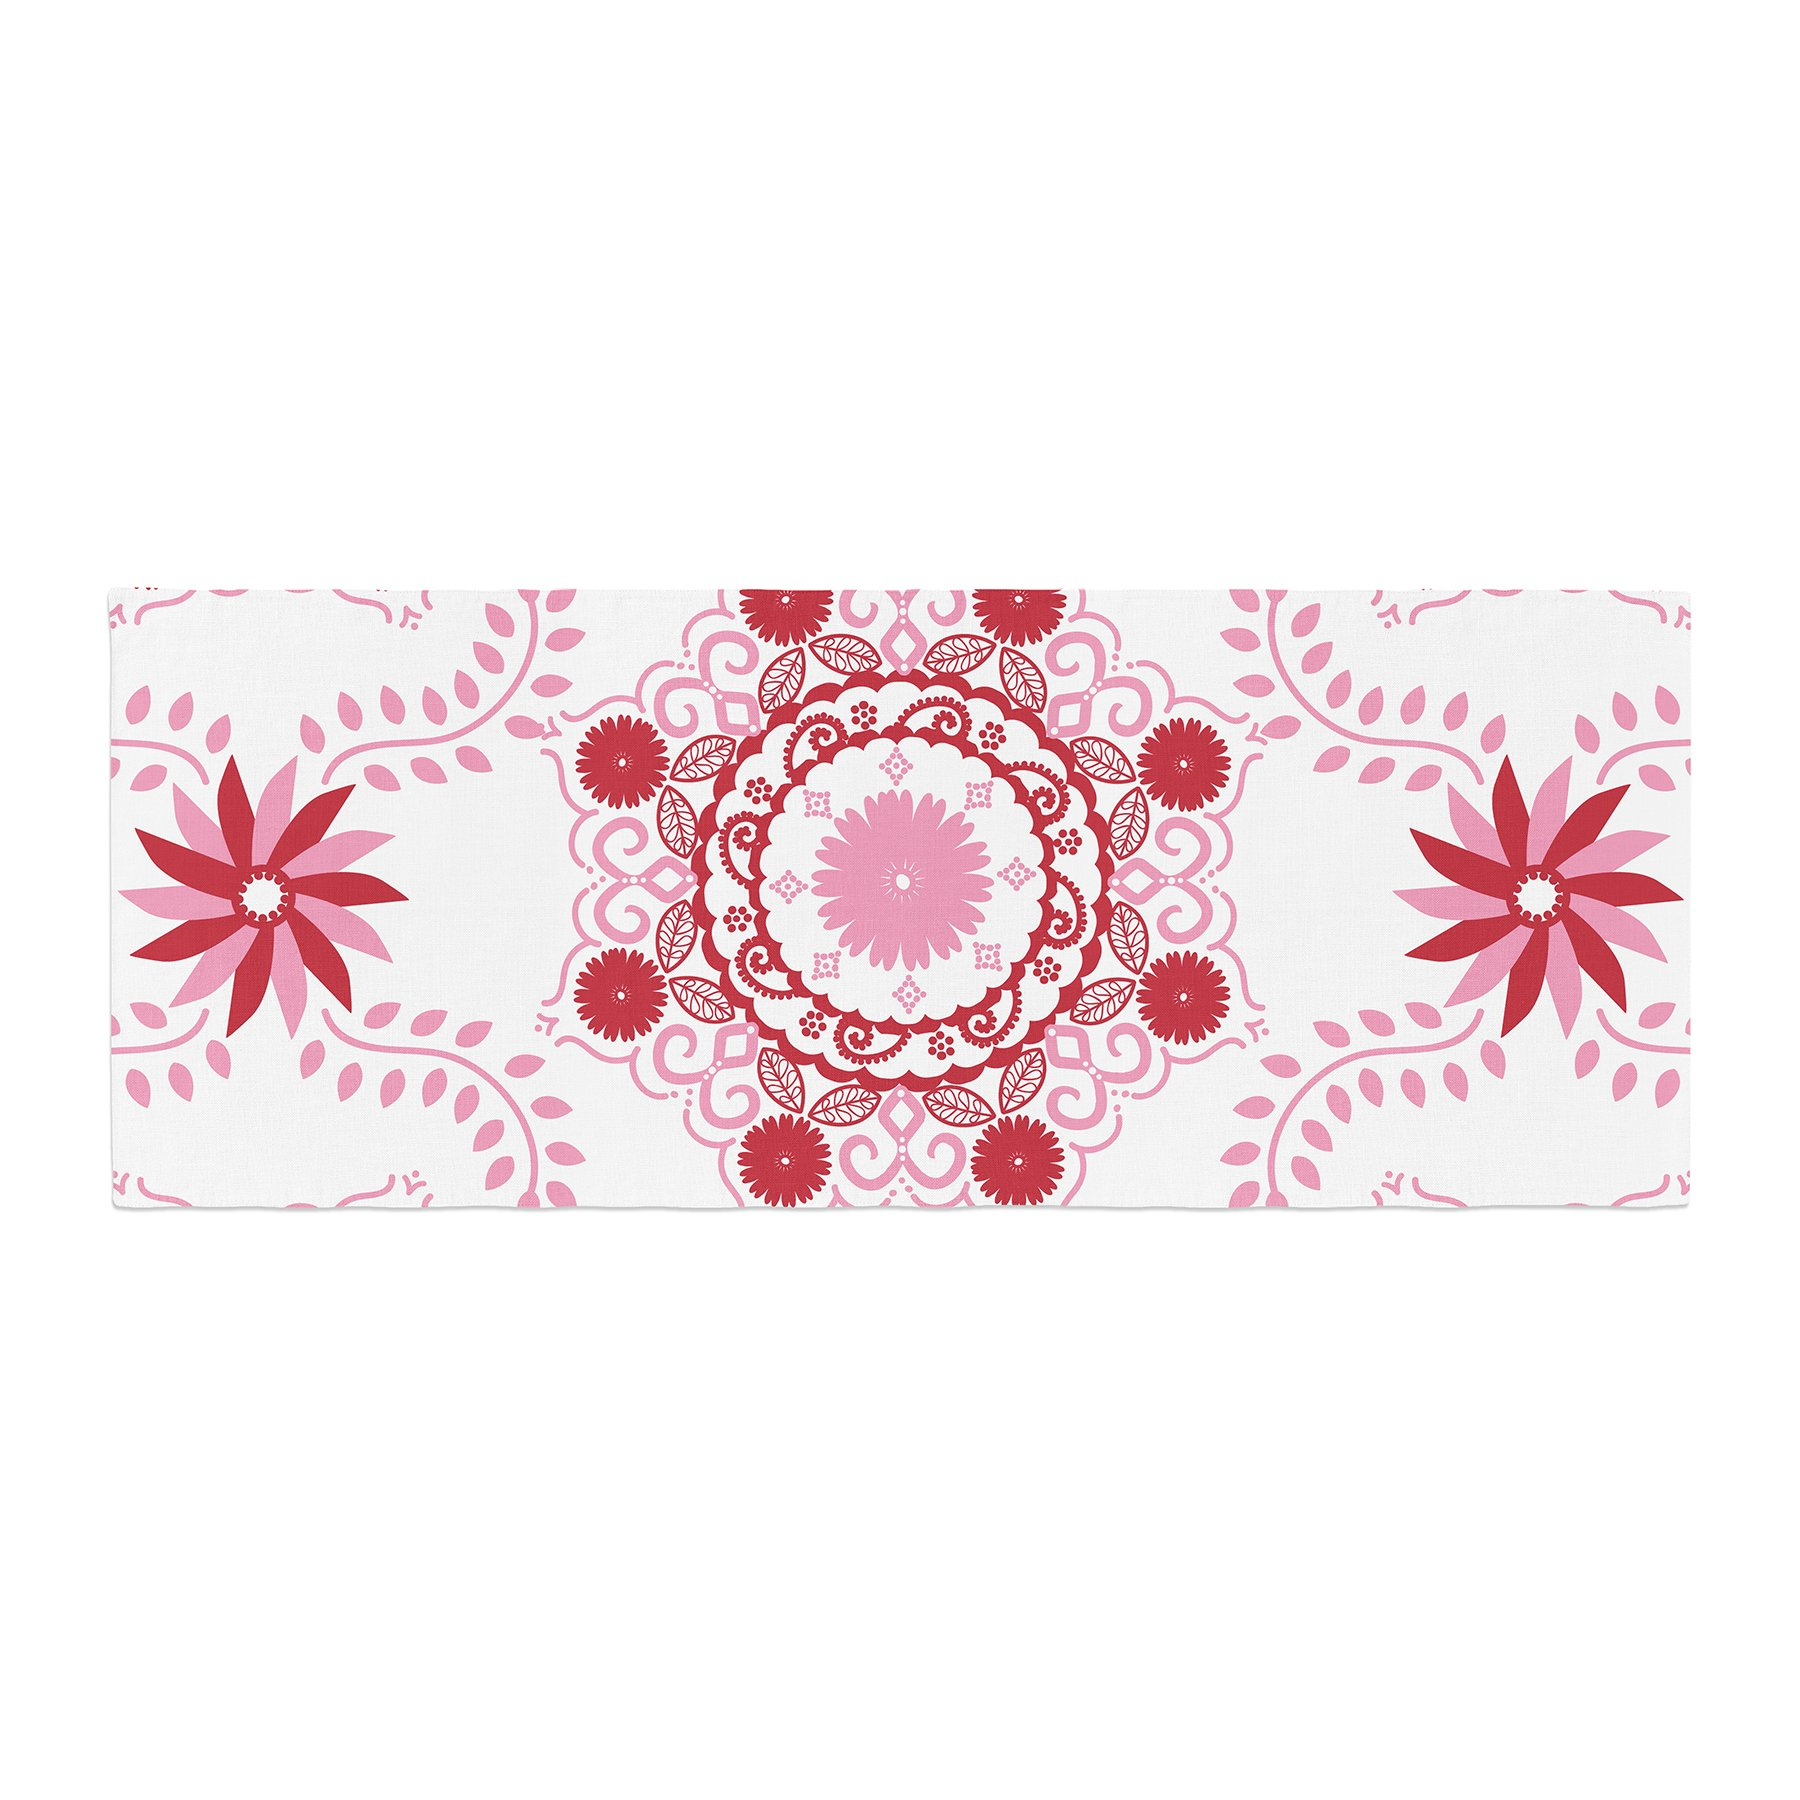 Kess InHouse Anneline Sophia Let's Dance Red Pink Floral Bed Runner, 34'' x 86''